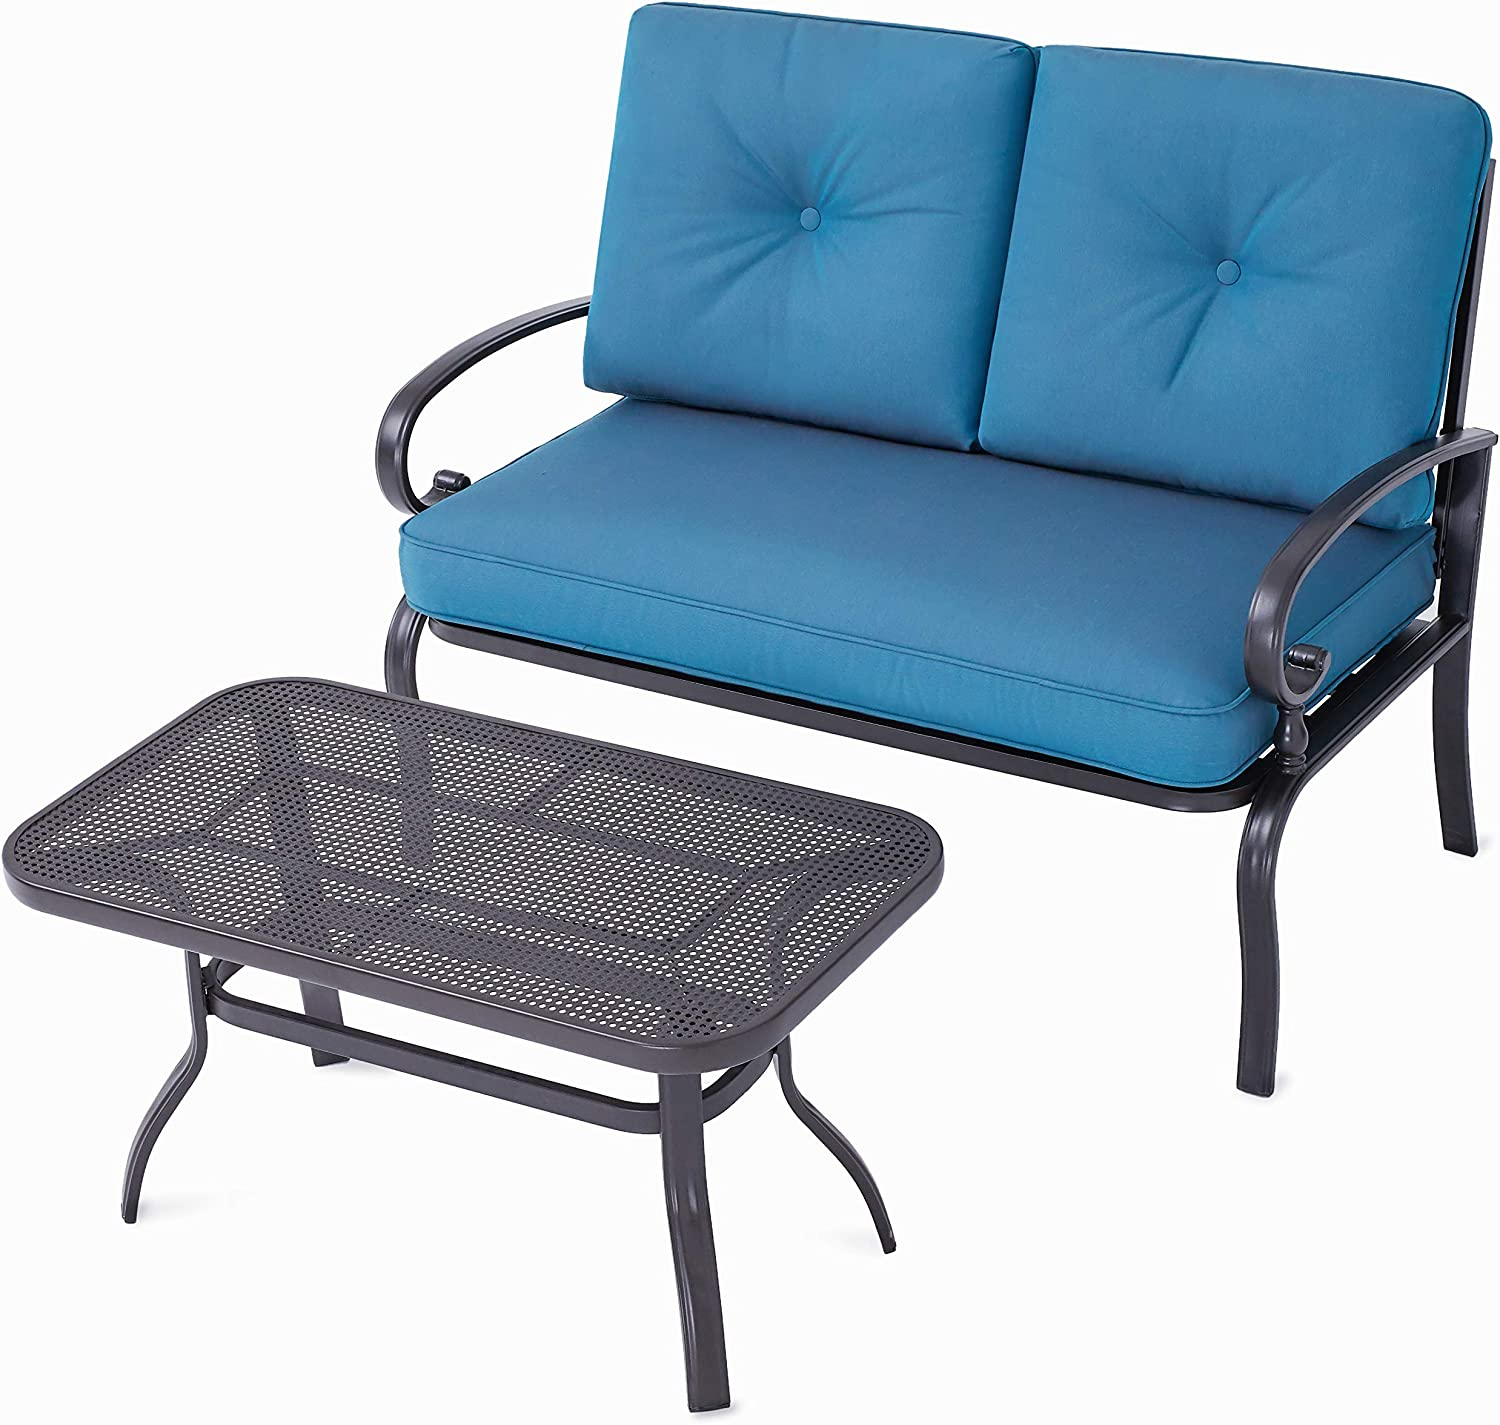 SOLAURA Patio Outdoor Furniture 2 Piece Loveseat Set Wrought Iron Frame Peacock Blue Cushions Bench Sofa with Coffee Table